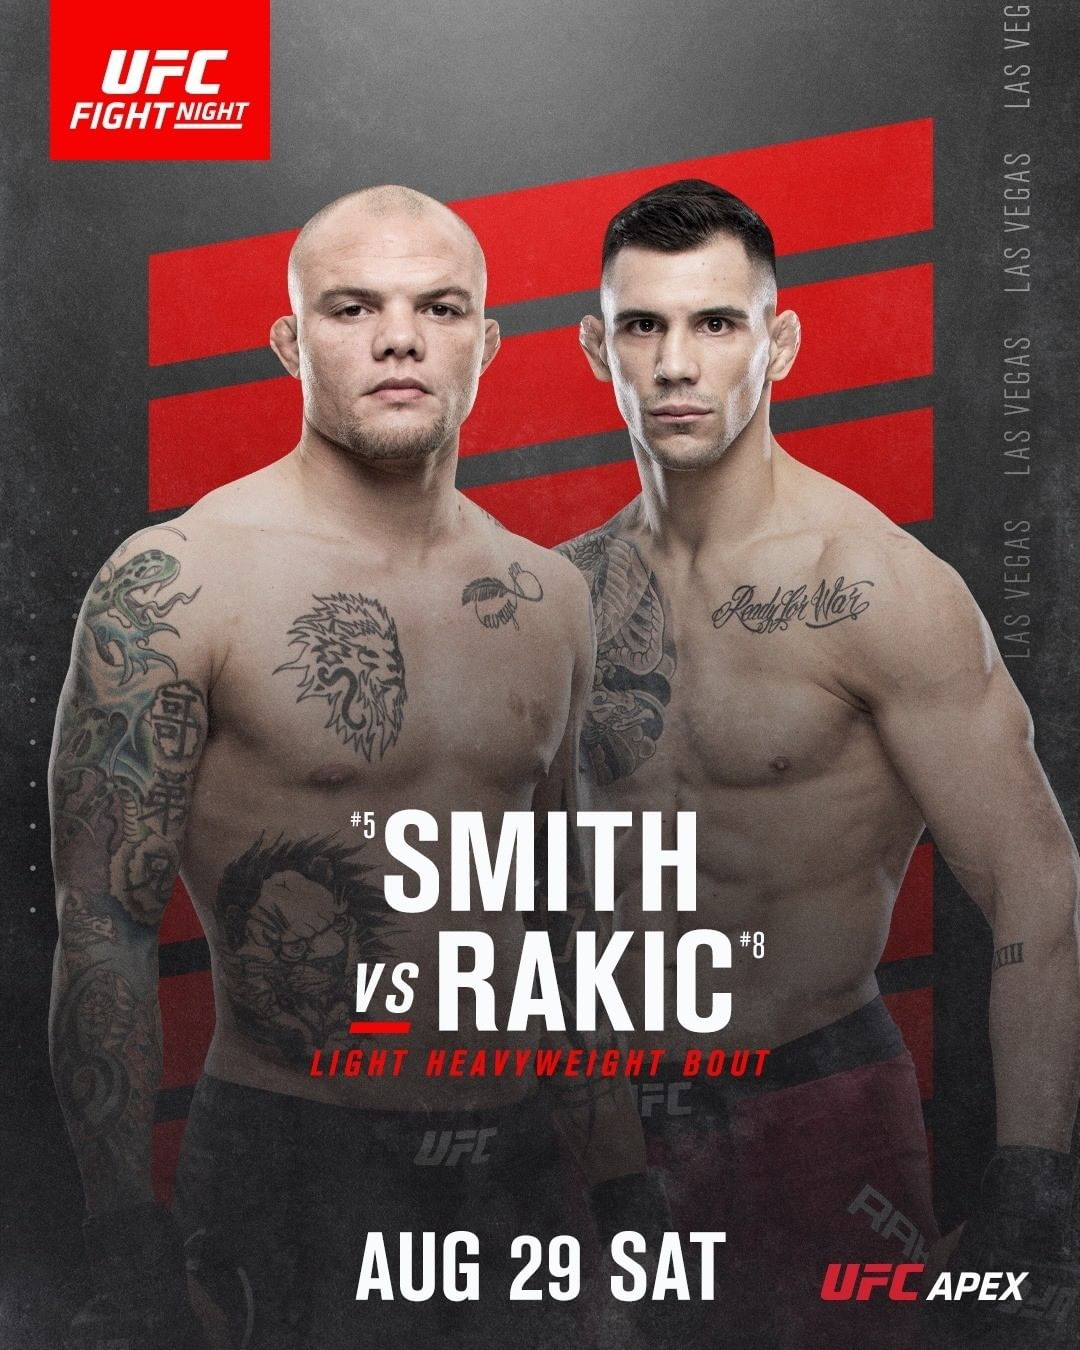 photo promo for UFC Fight Night 175